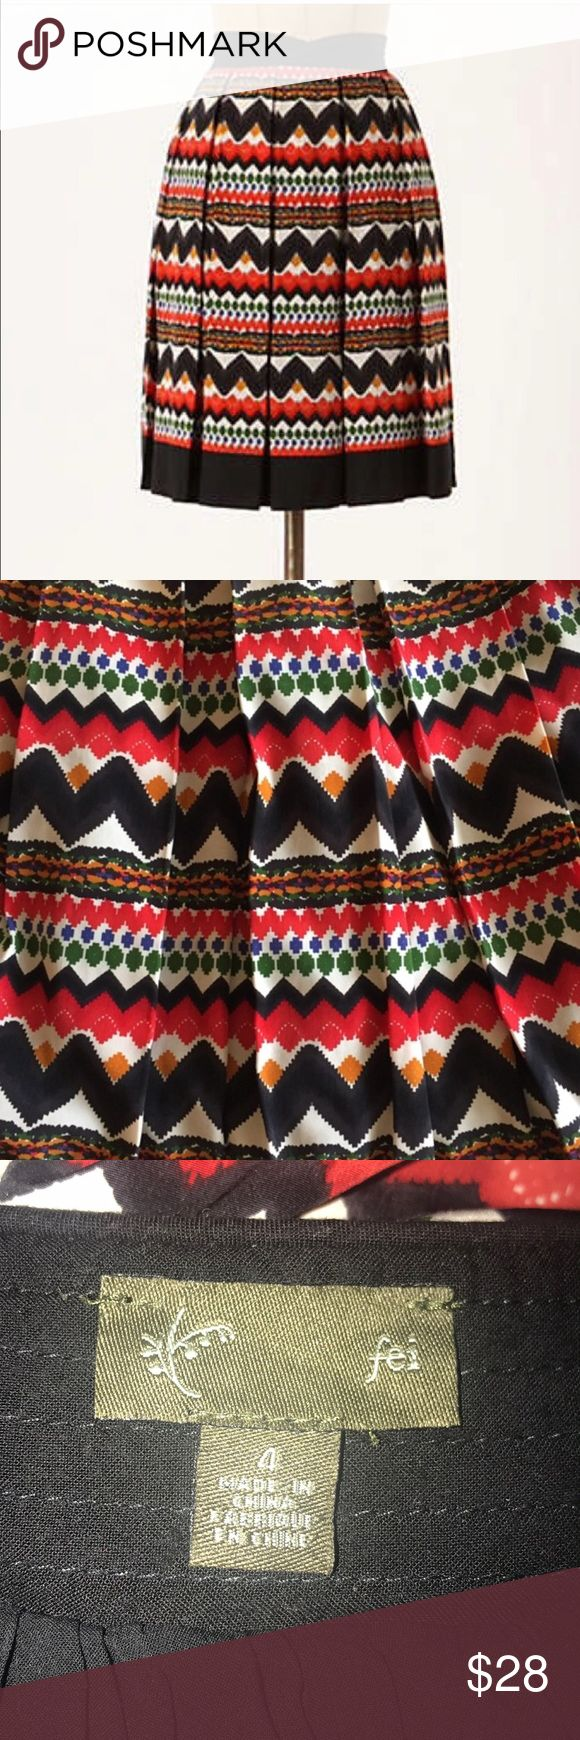 Anthropologie FEI Denpasar Tribal Print Skirt Sz 4 Anthropologie FEI Denpasar Tribal Print Skirt  Size 4 Has pockets Fully lined Excellent Condition! Thanks for looking💜 (1-24/0050) Anthropologie Skirts